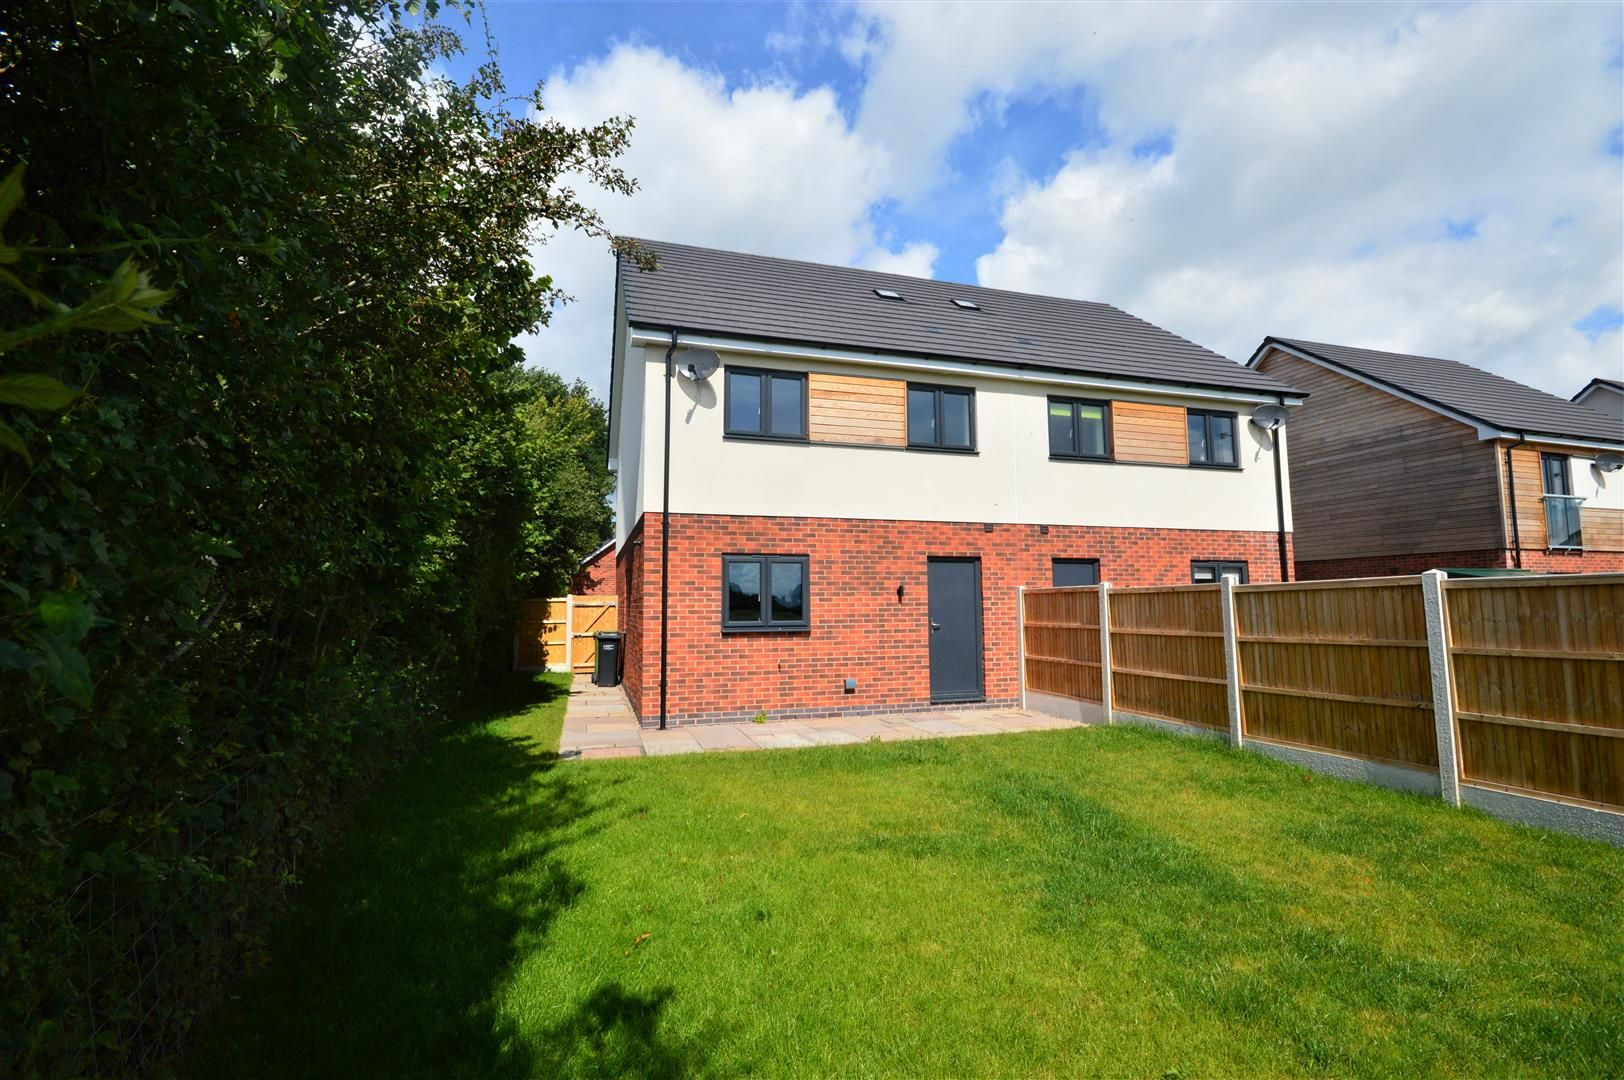 3 bed semi-detached for sale in Kingsland 8